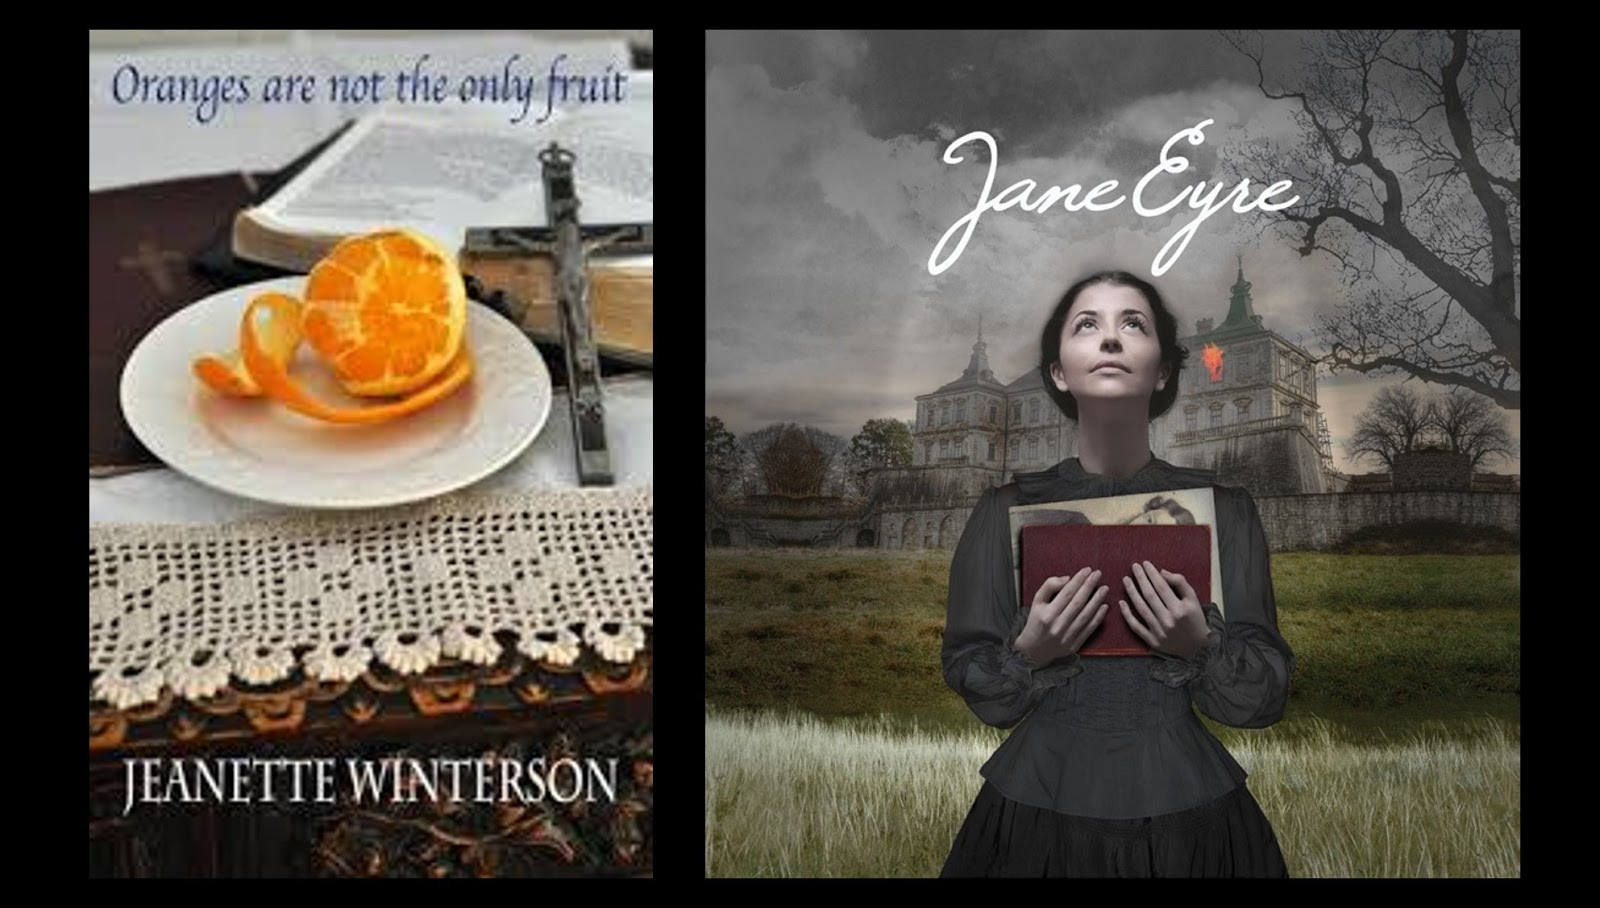 Oranges Are Not The Only Fruit Significance Of The Title Belles